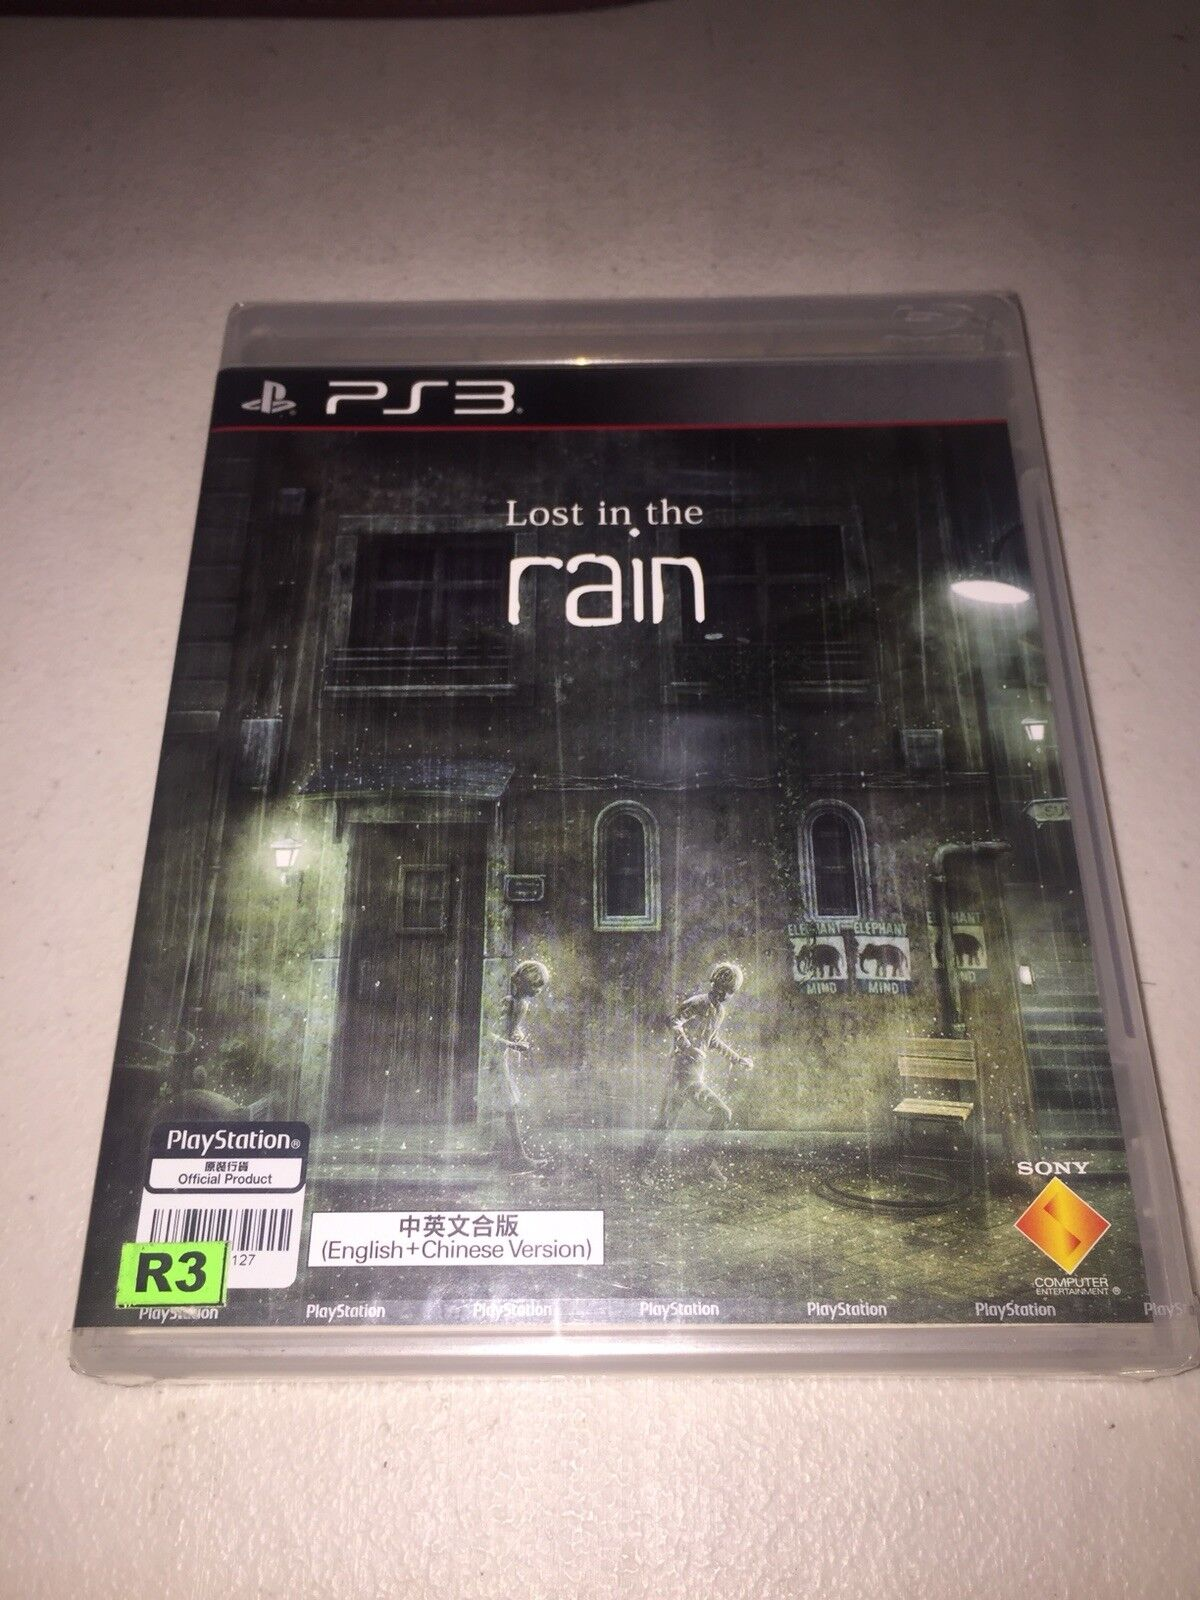 Lost In The Rain PS3 Game, Sealed (English & Chinese Version) Very Rare